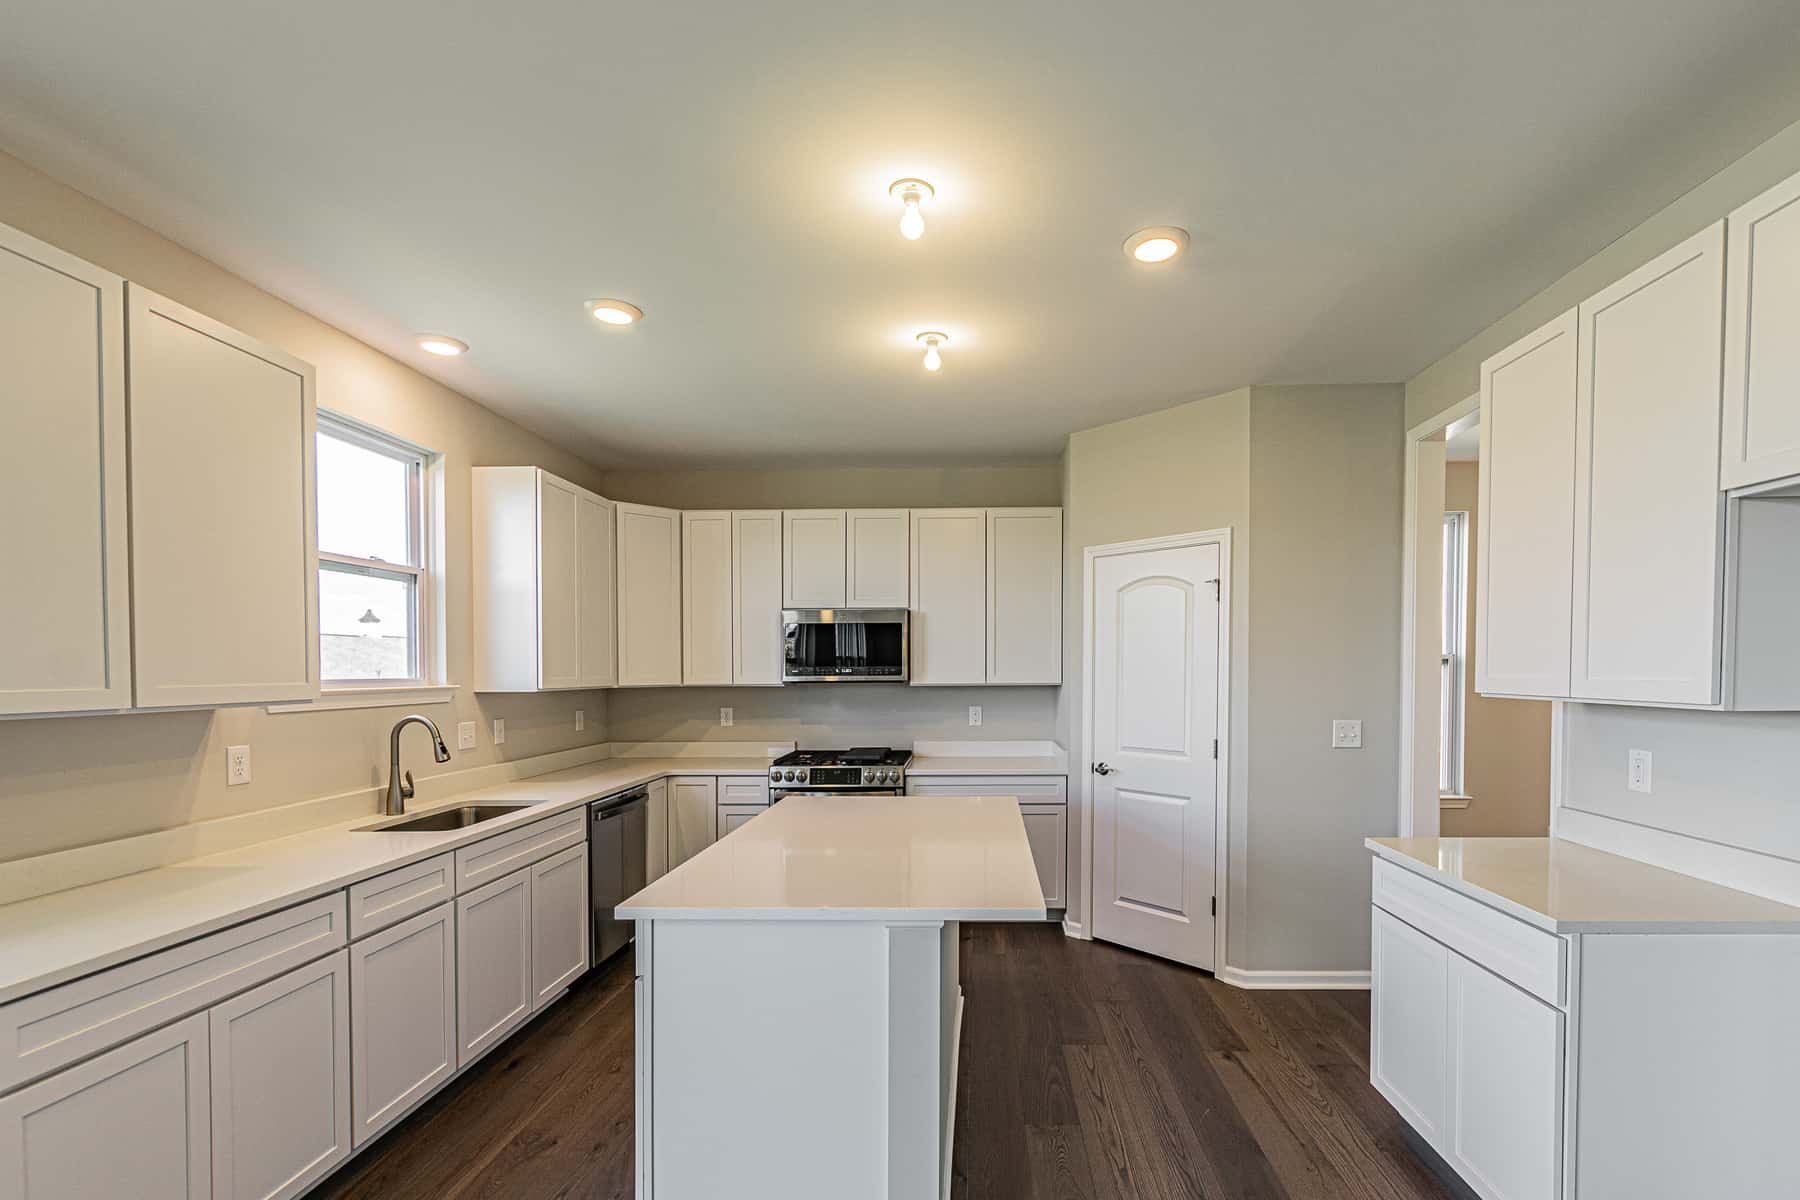 Kitchen featured in the Fairbanks By M/I Homes in Detroit, MI